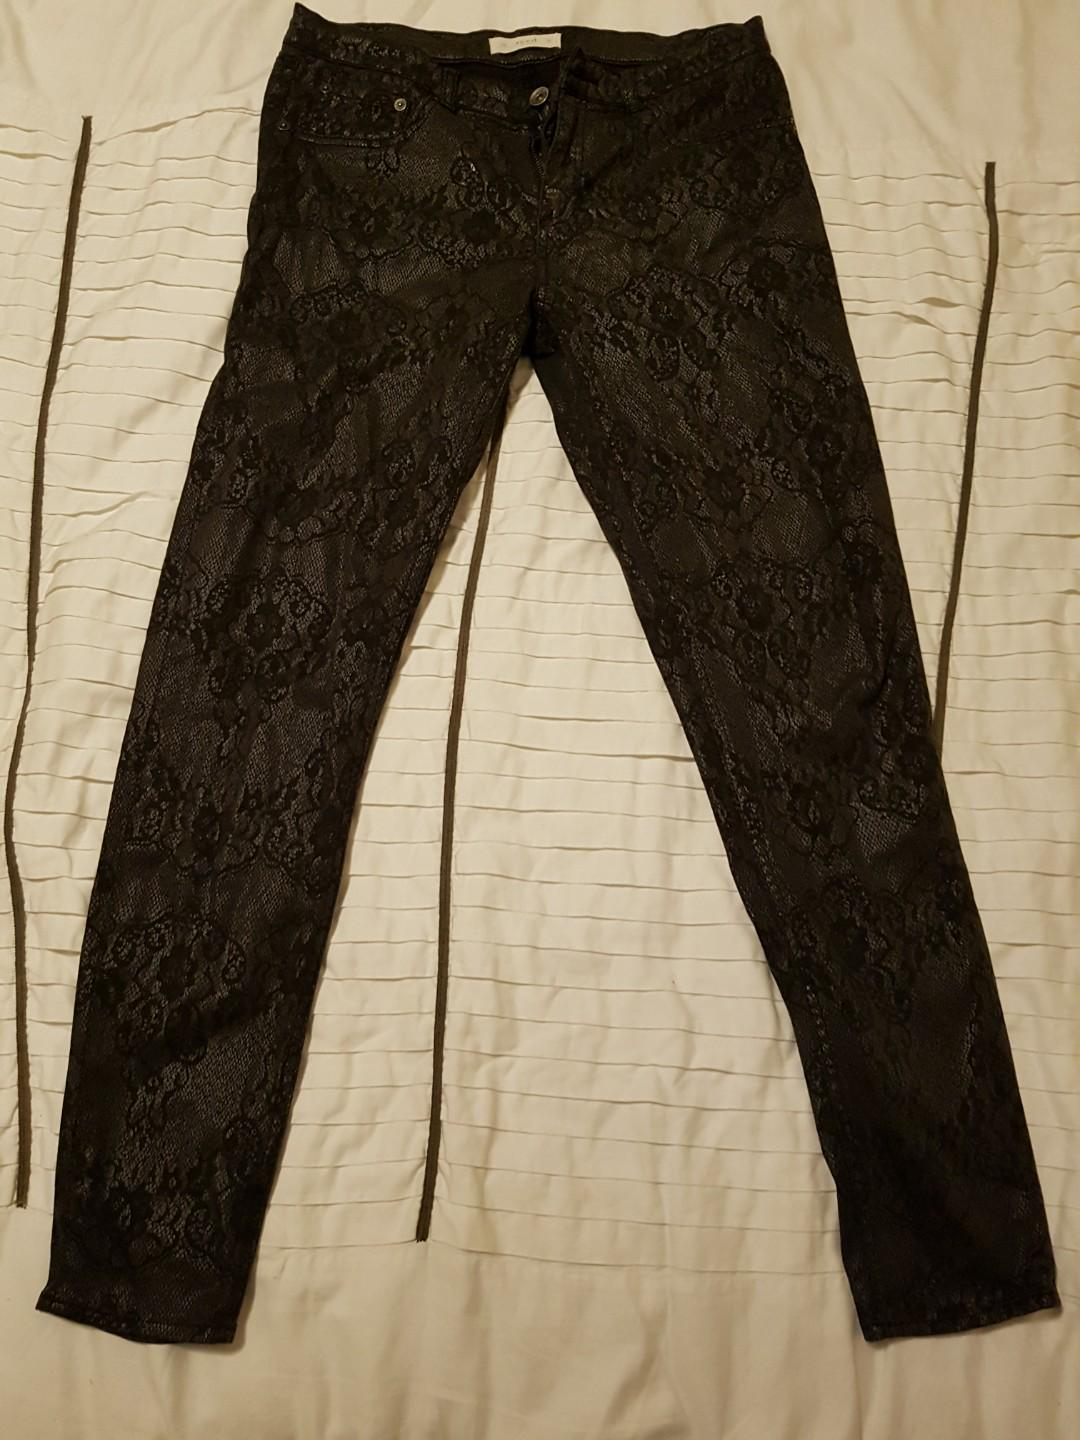 SEED Animal printed pants (size 10)